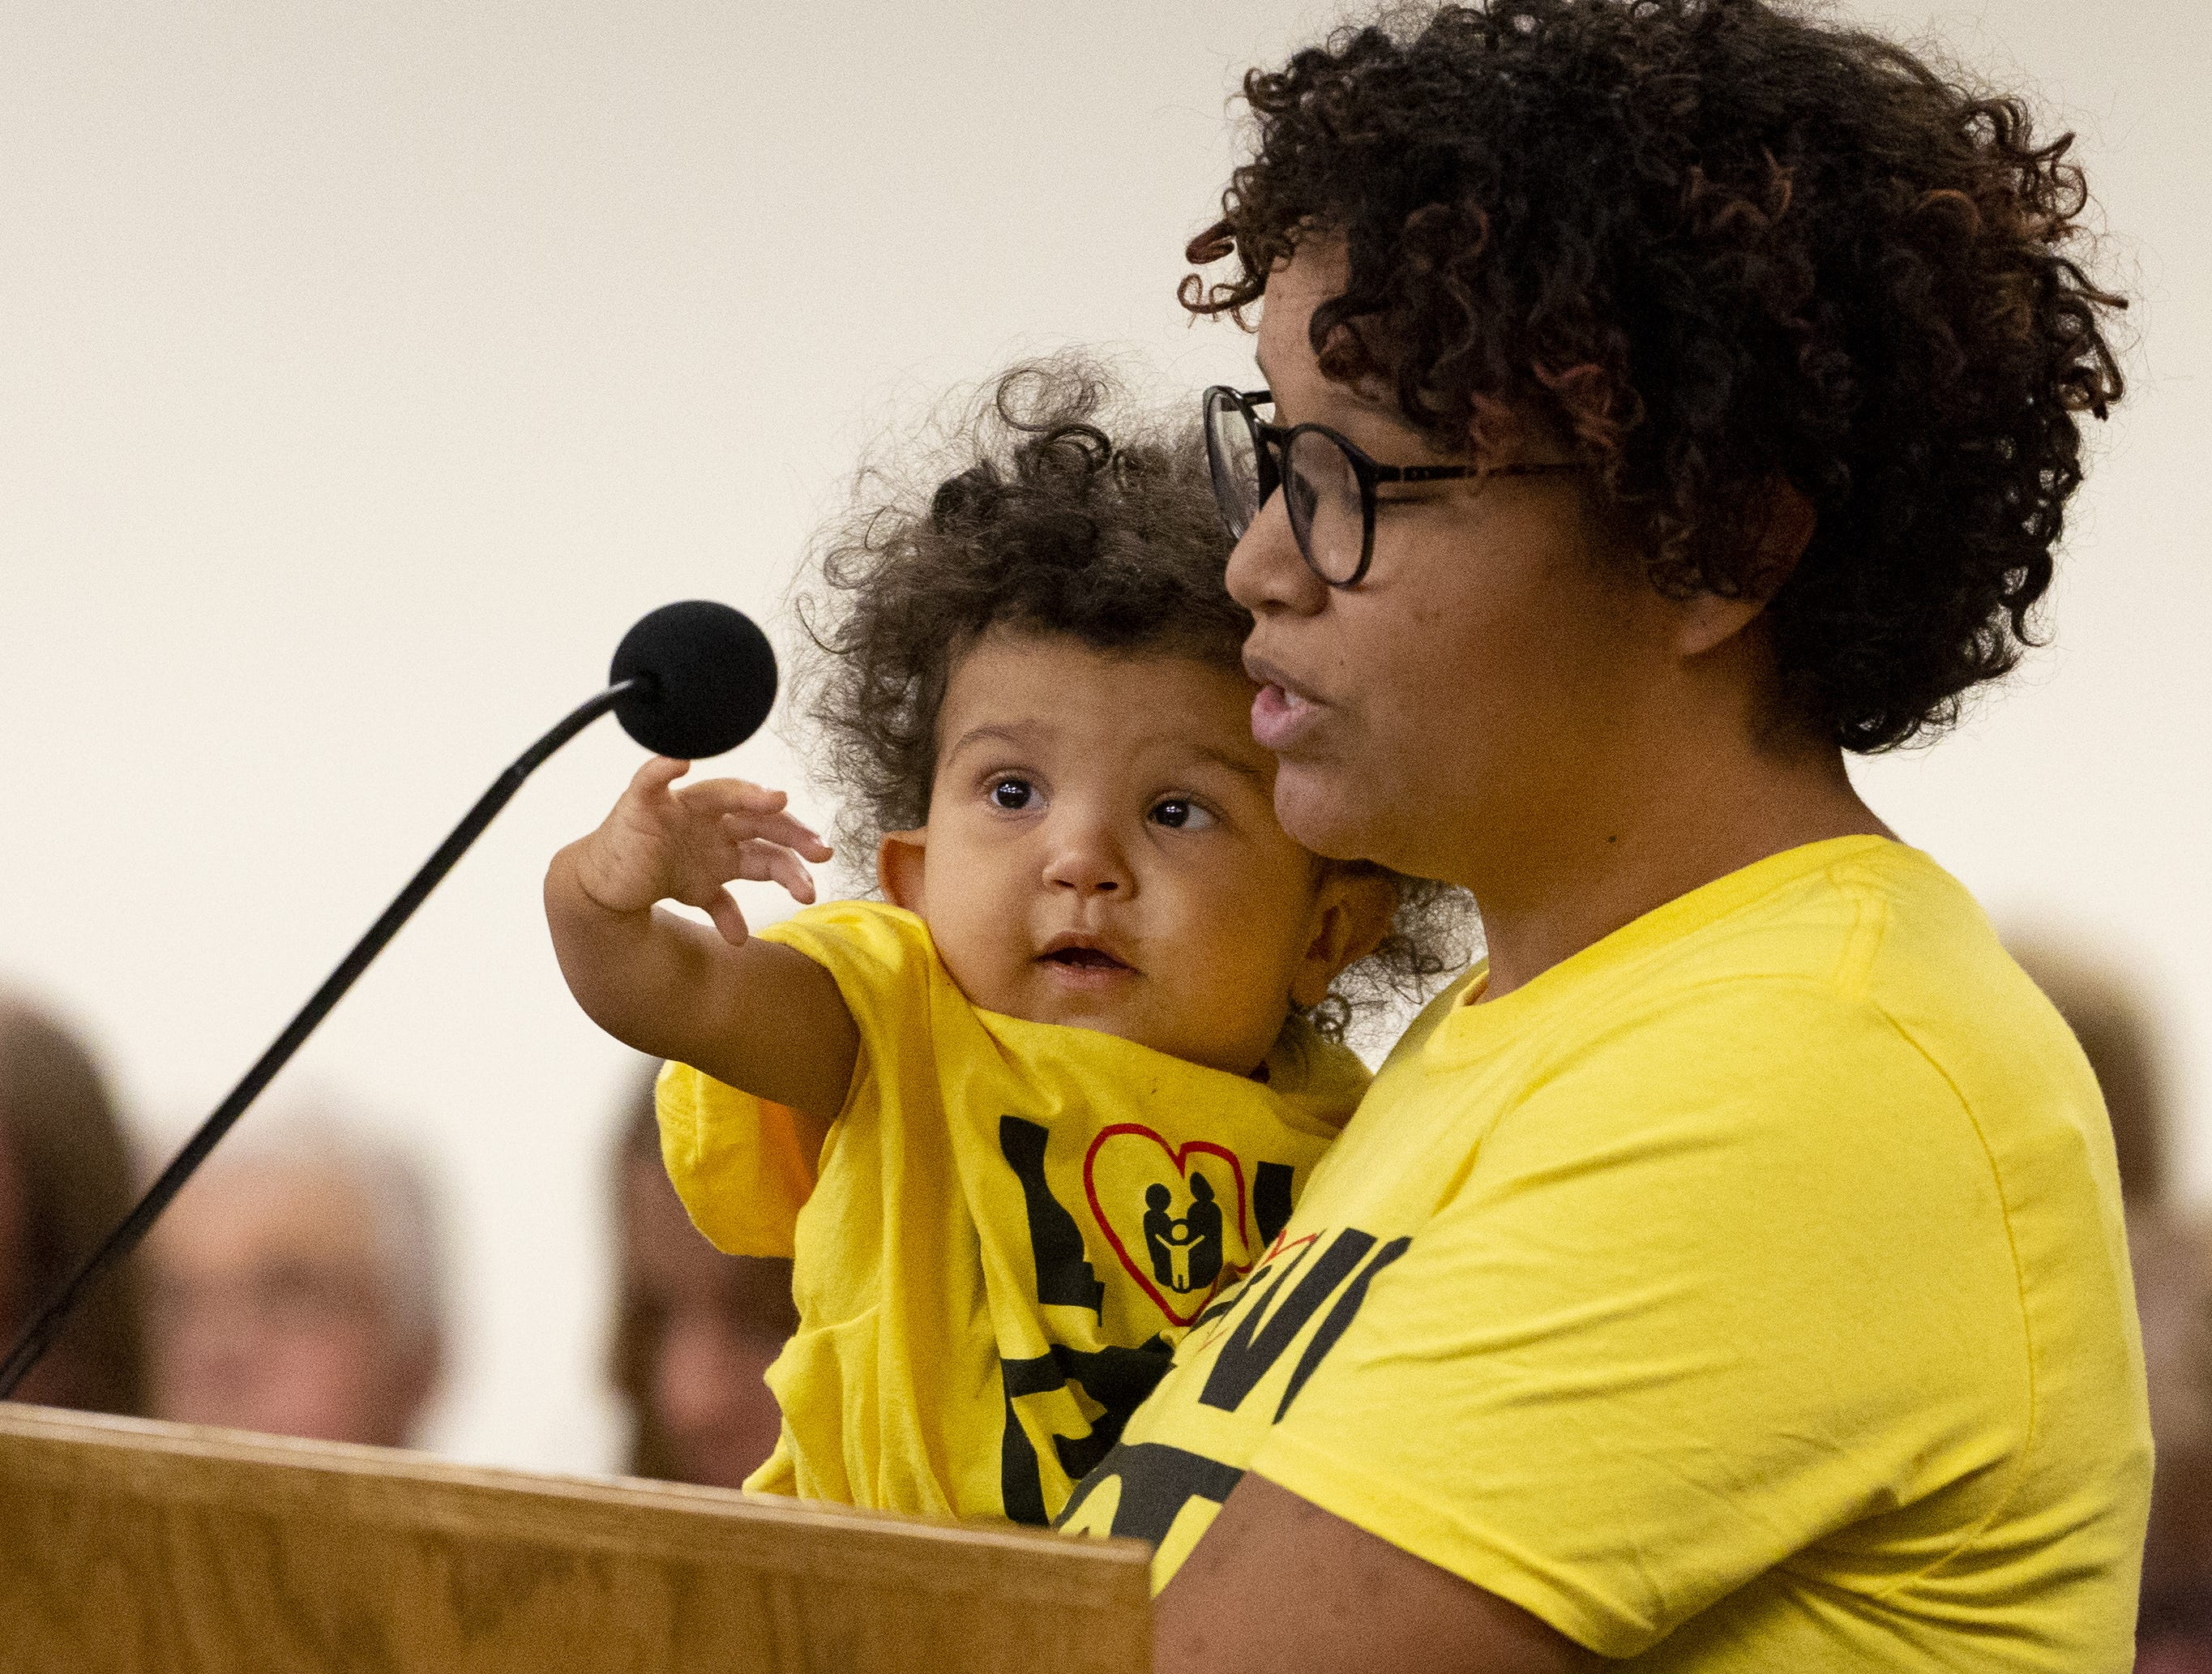 Levi Svedin, 1, reaches for the microphone while his mother, Kayla, speaks in favor of ESA during a hearing on school vouchers in a senate hearing room at the state Capitol in Phoenix on February 13.